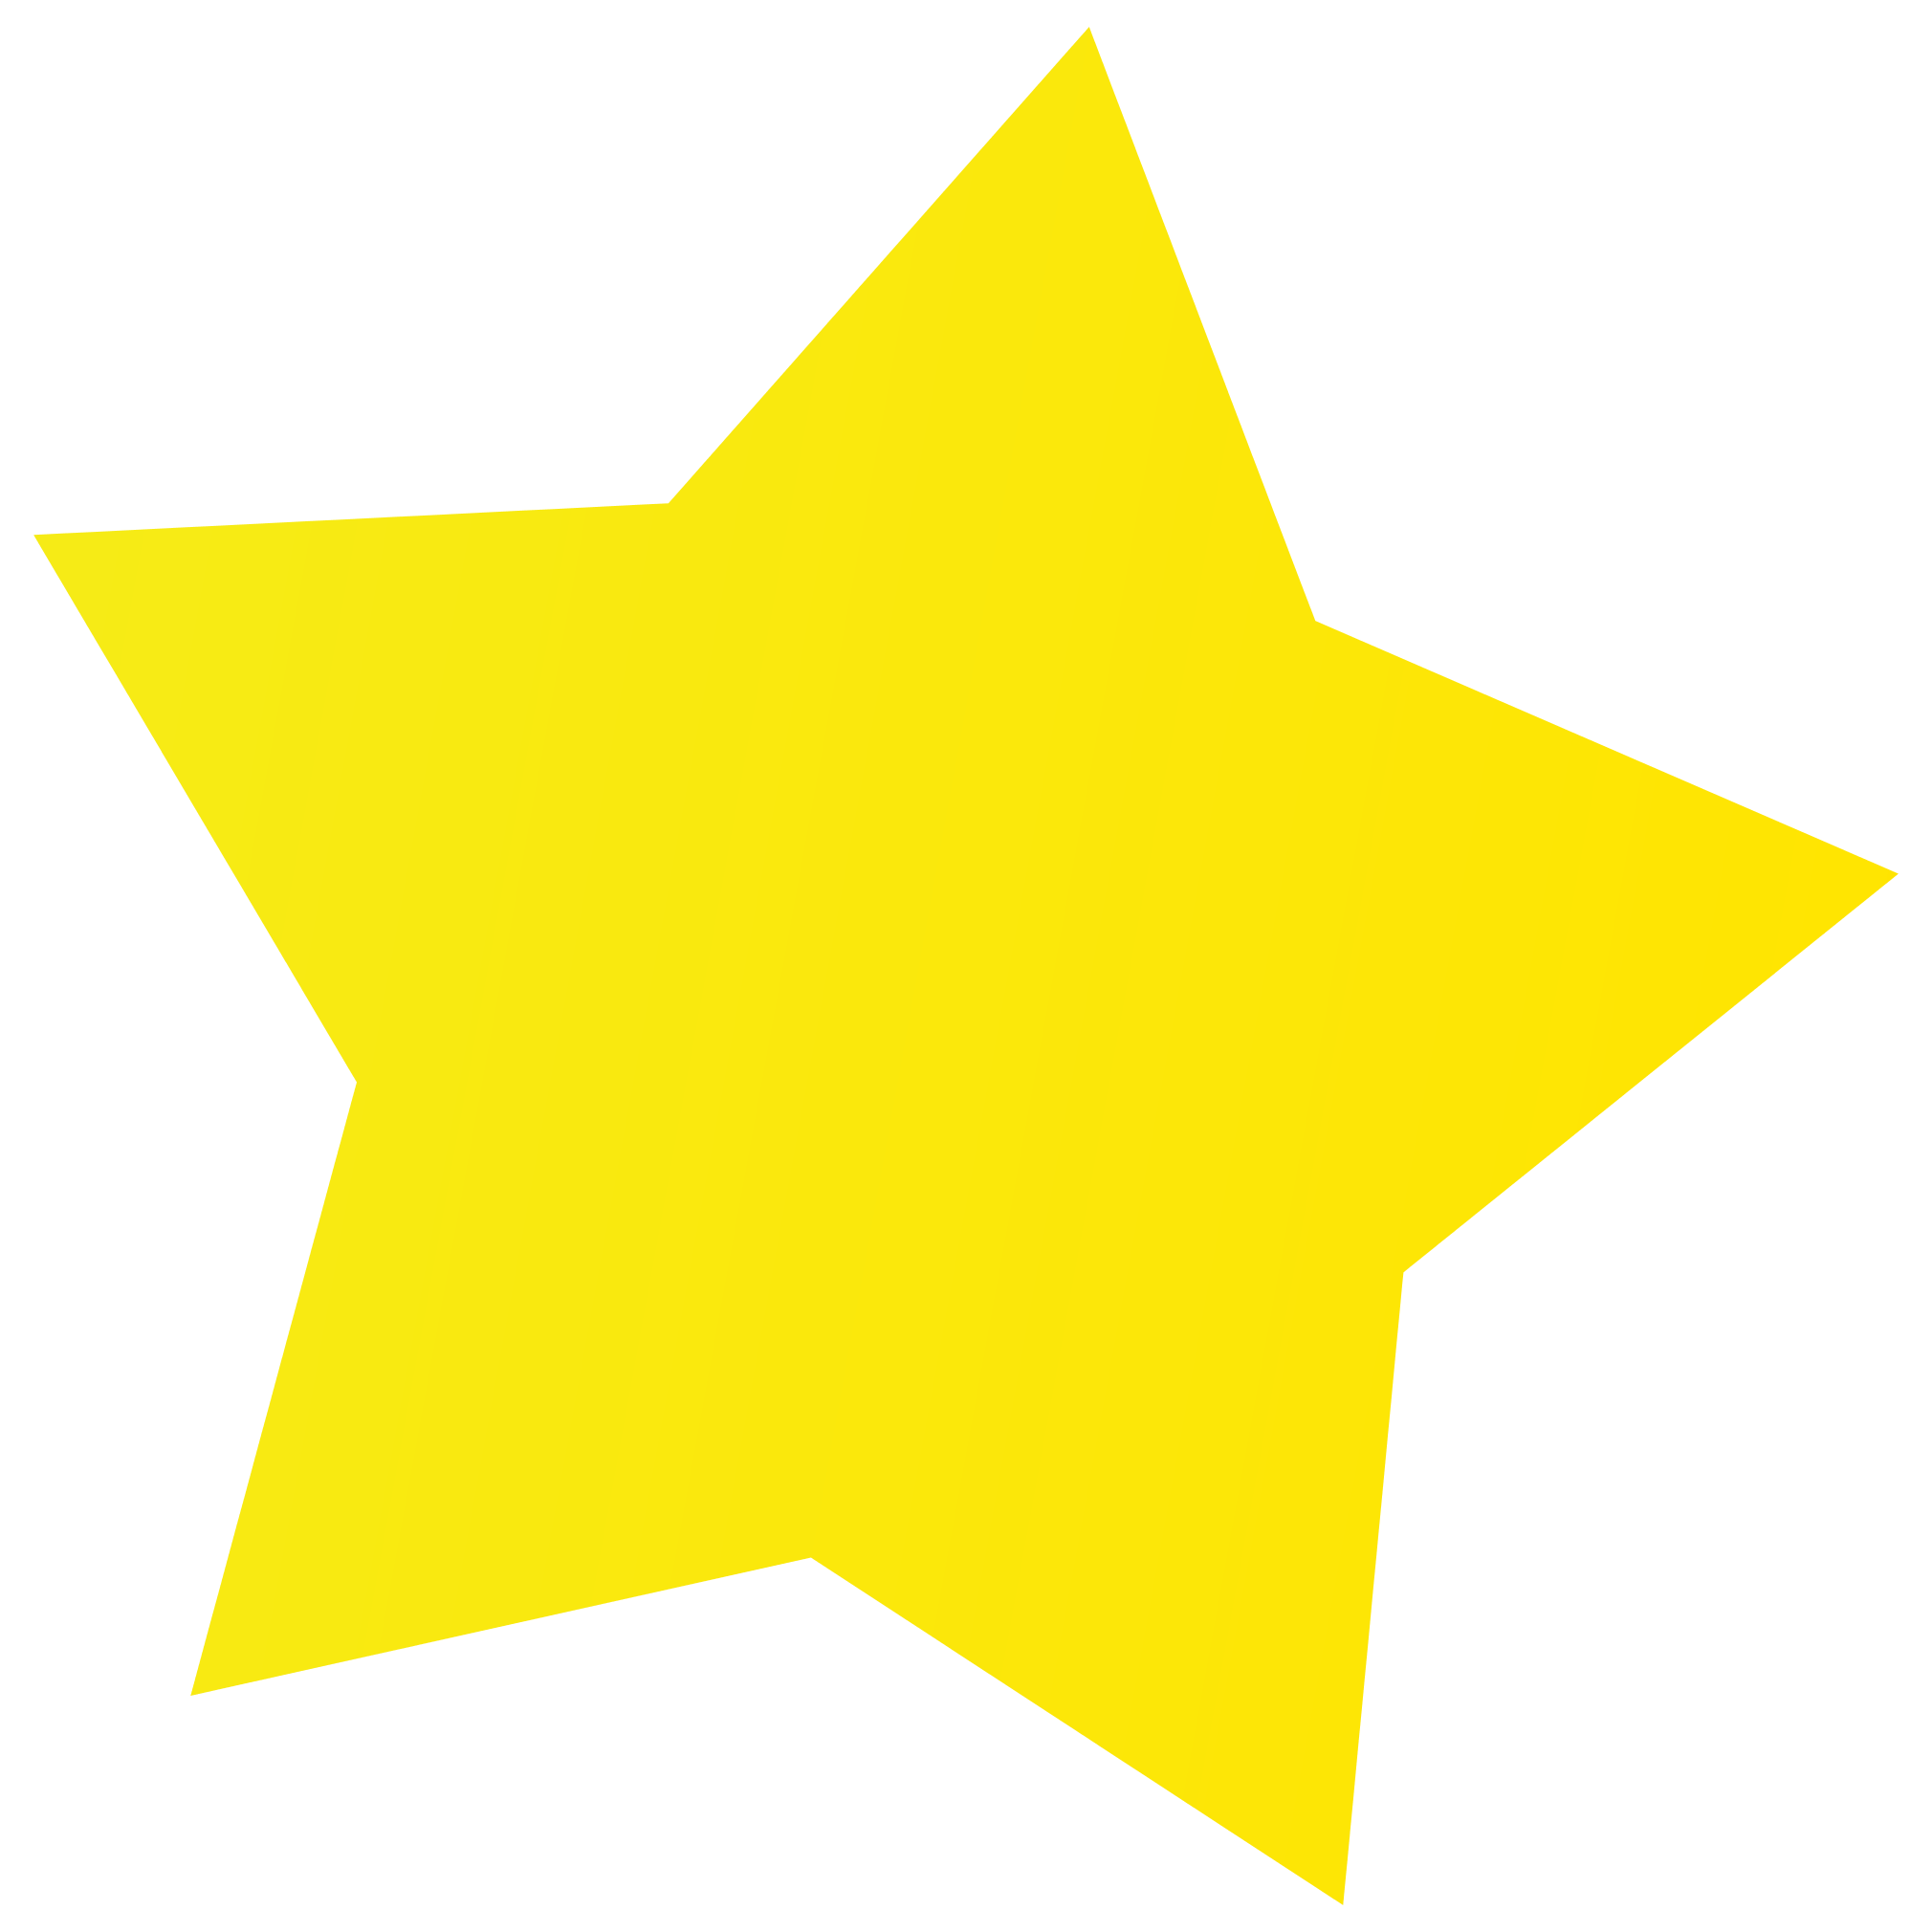 Golden Star Png Image Golden Star Star Background Stars